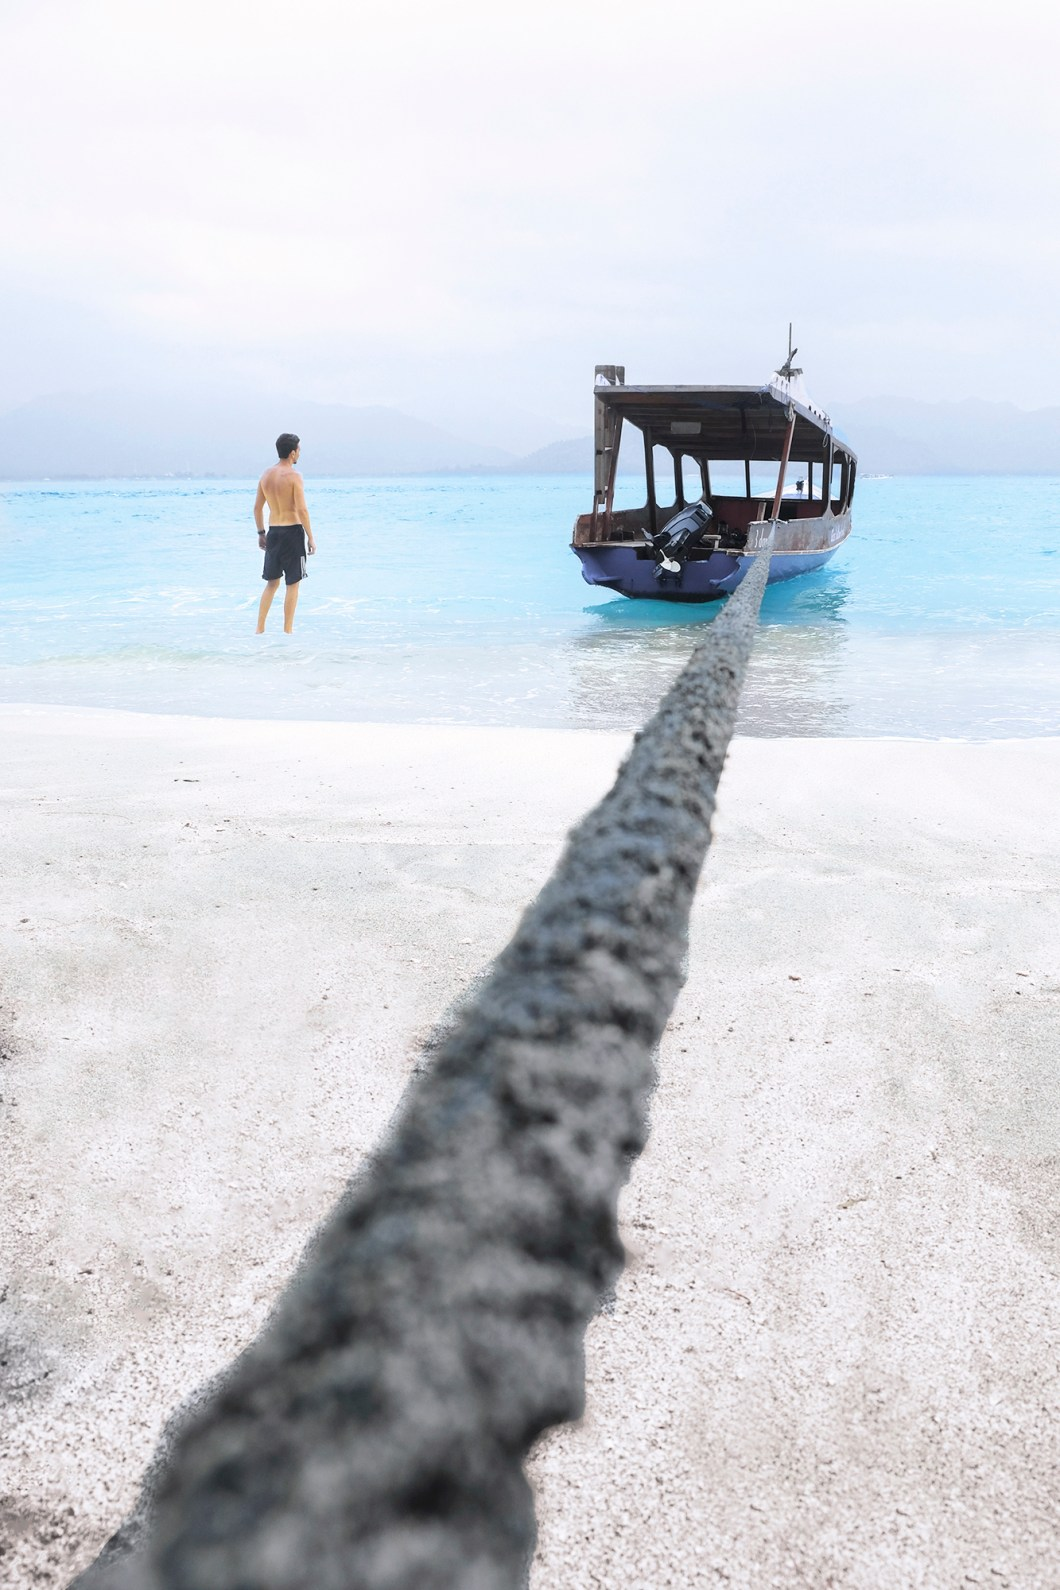 Gili Trawangan Indonesia | How Far From Home